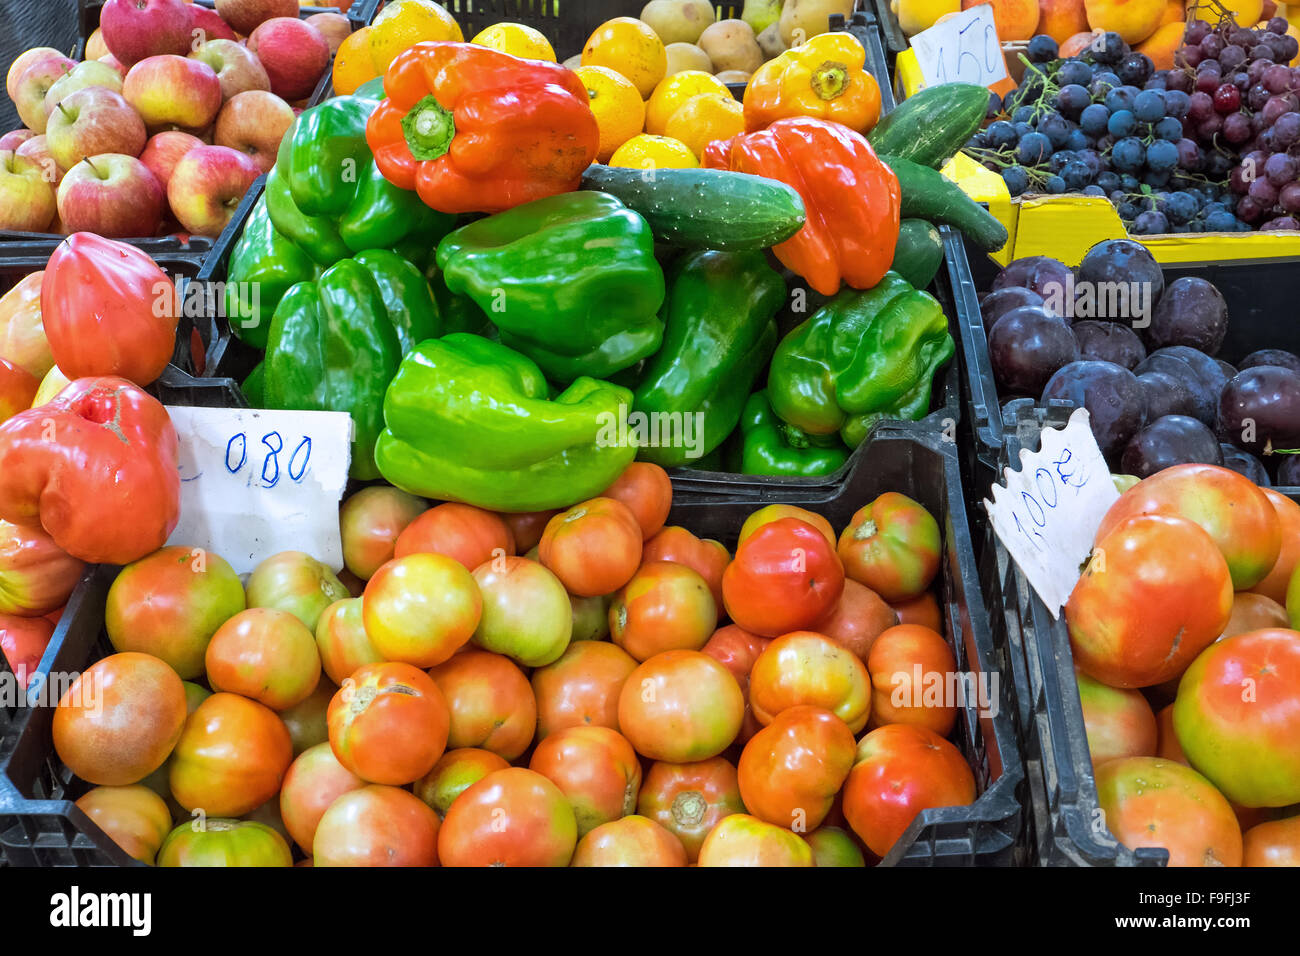 Different kinds of vegetables and fruits seen on a market - Stock Image